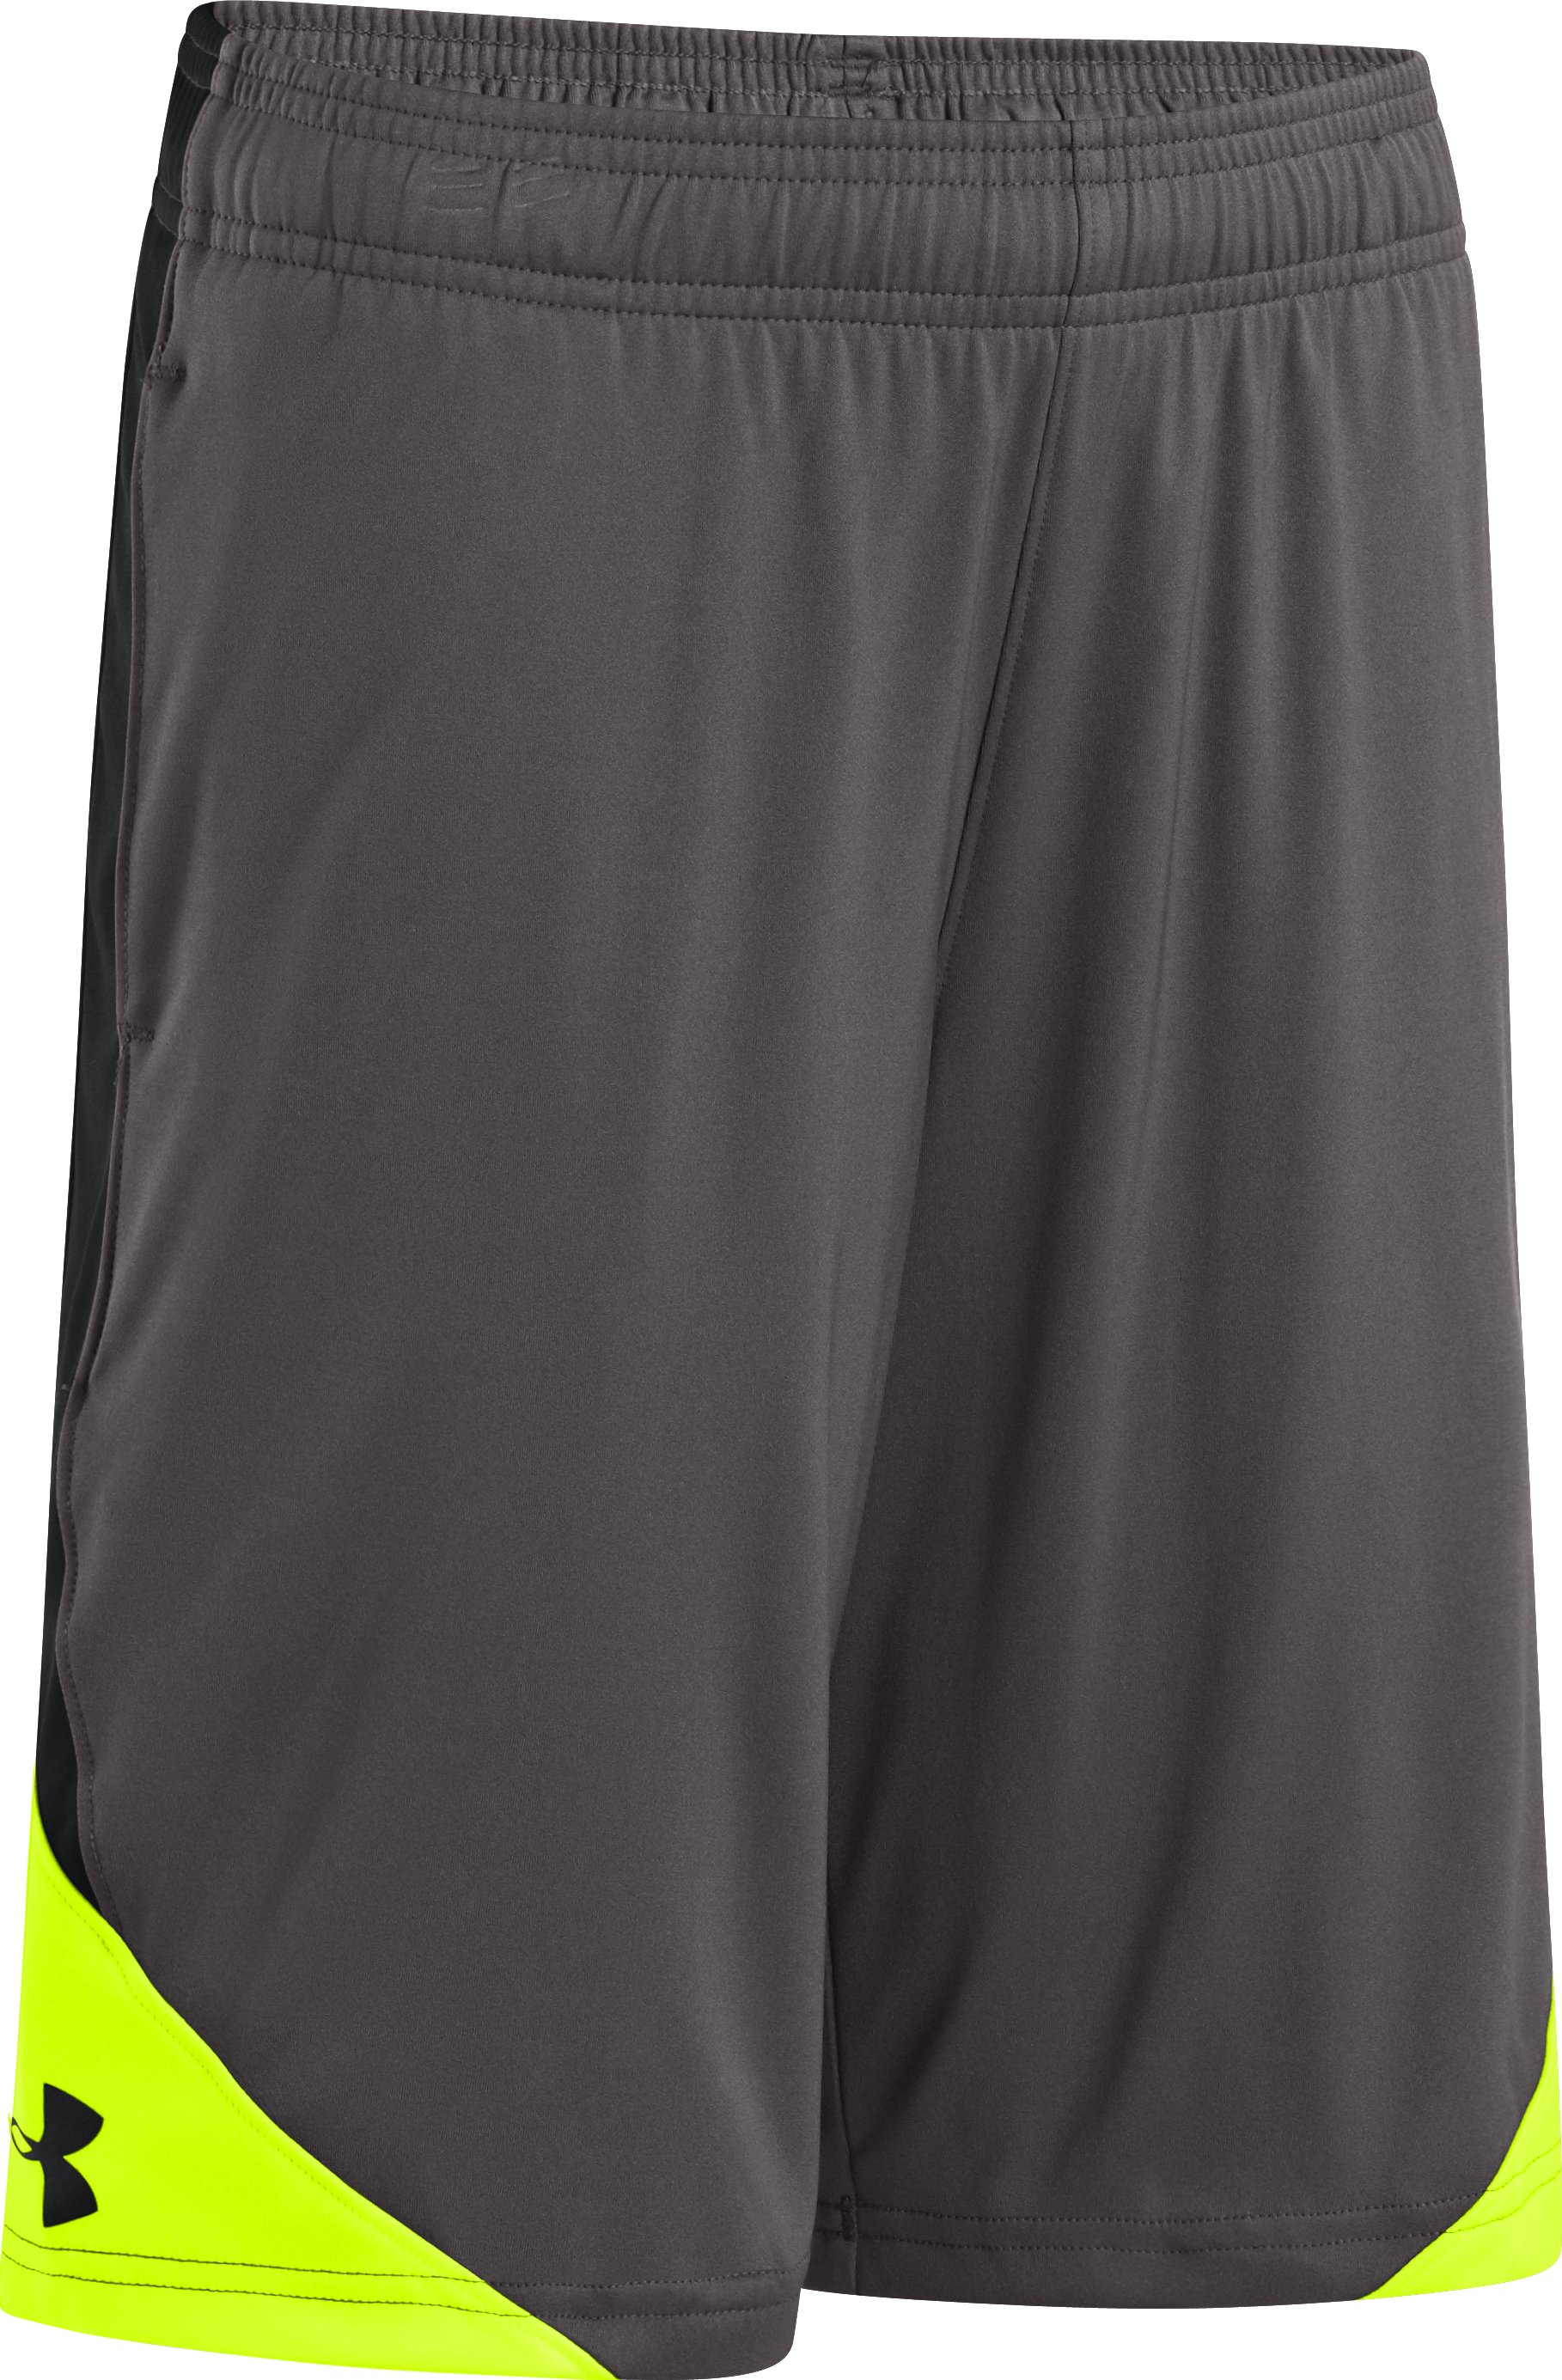 Boys' UA Extreme Shorts, Charcoal